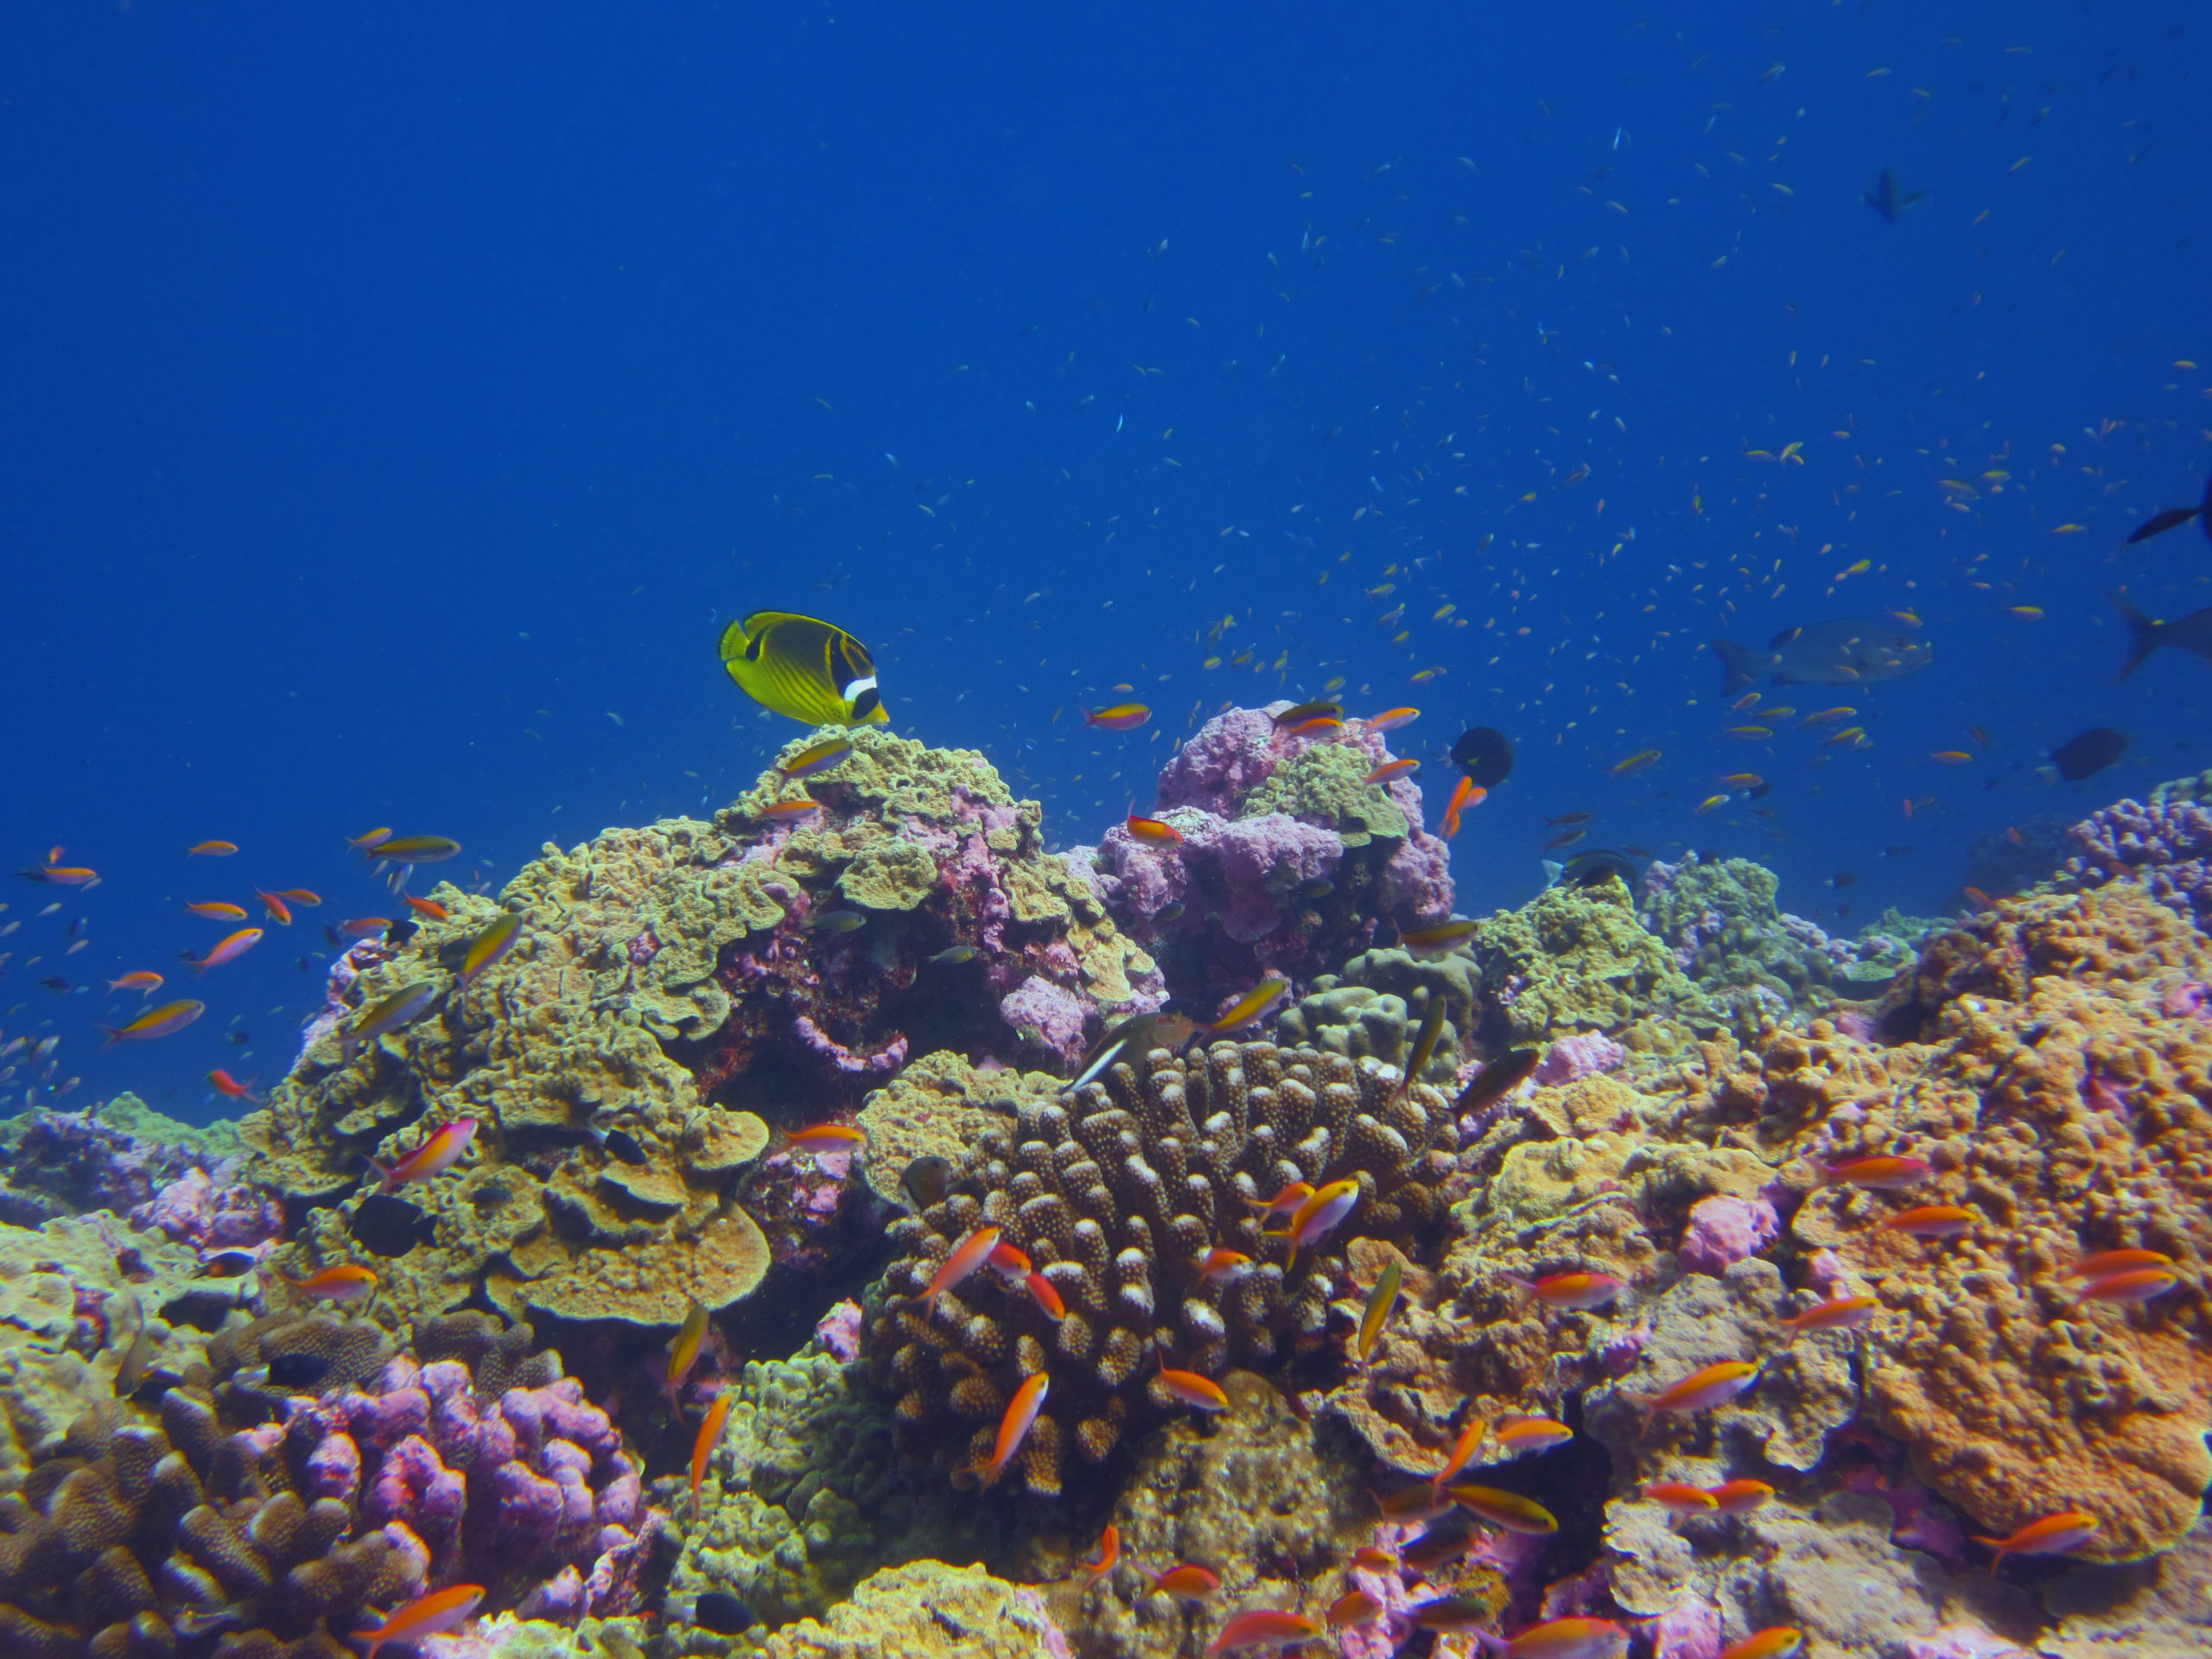 Underwater photograph of a healthy coral reef in the Phoenix Islands Protected Area.